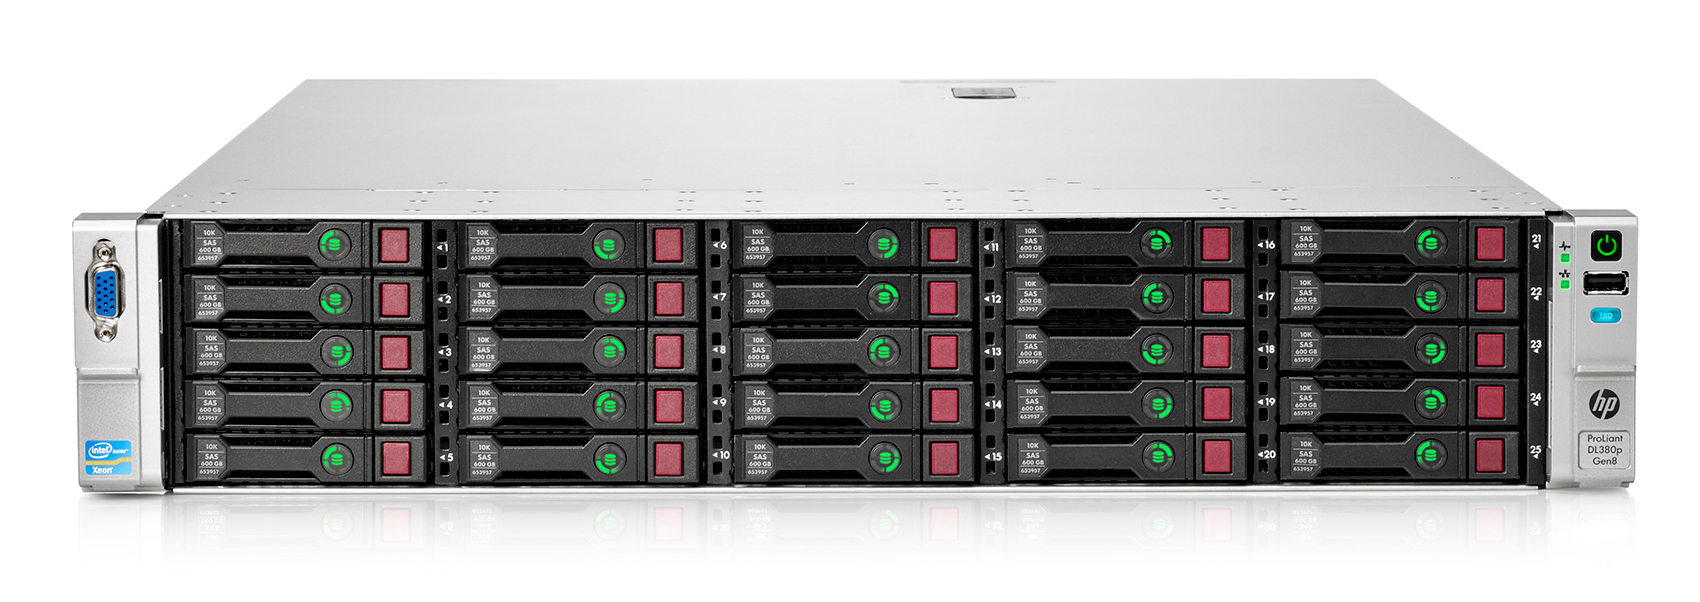 HP Proliant DL380p Gen8 25хSFF